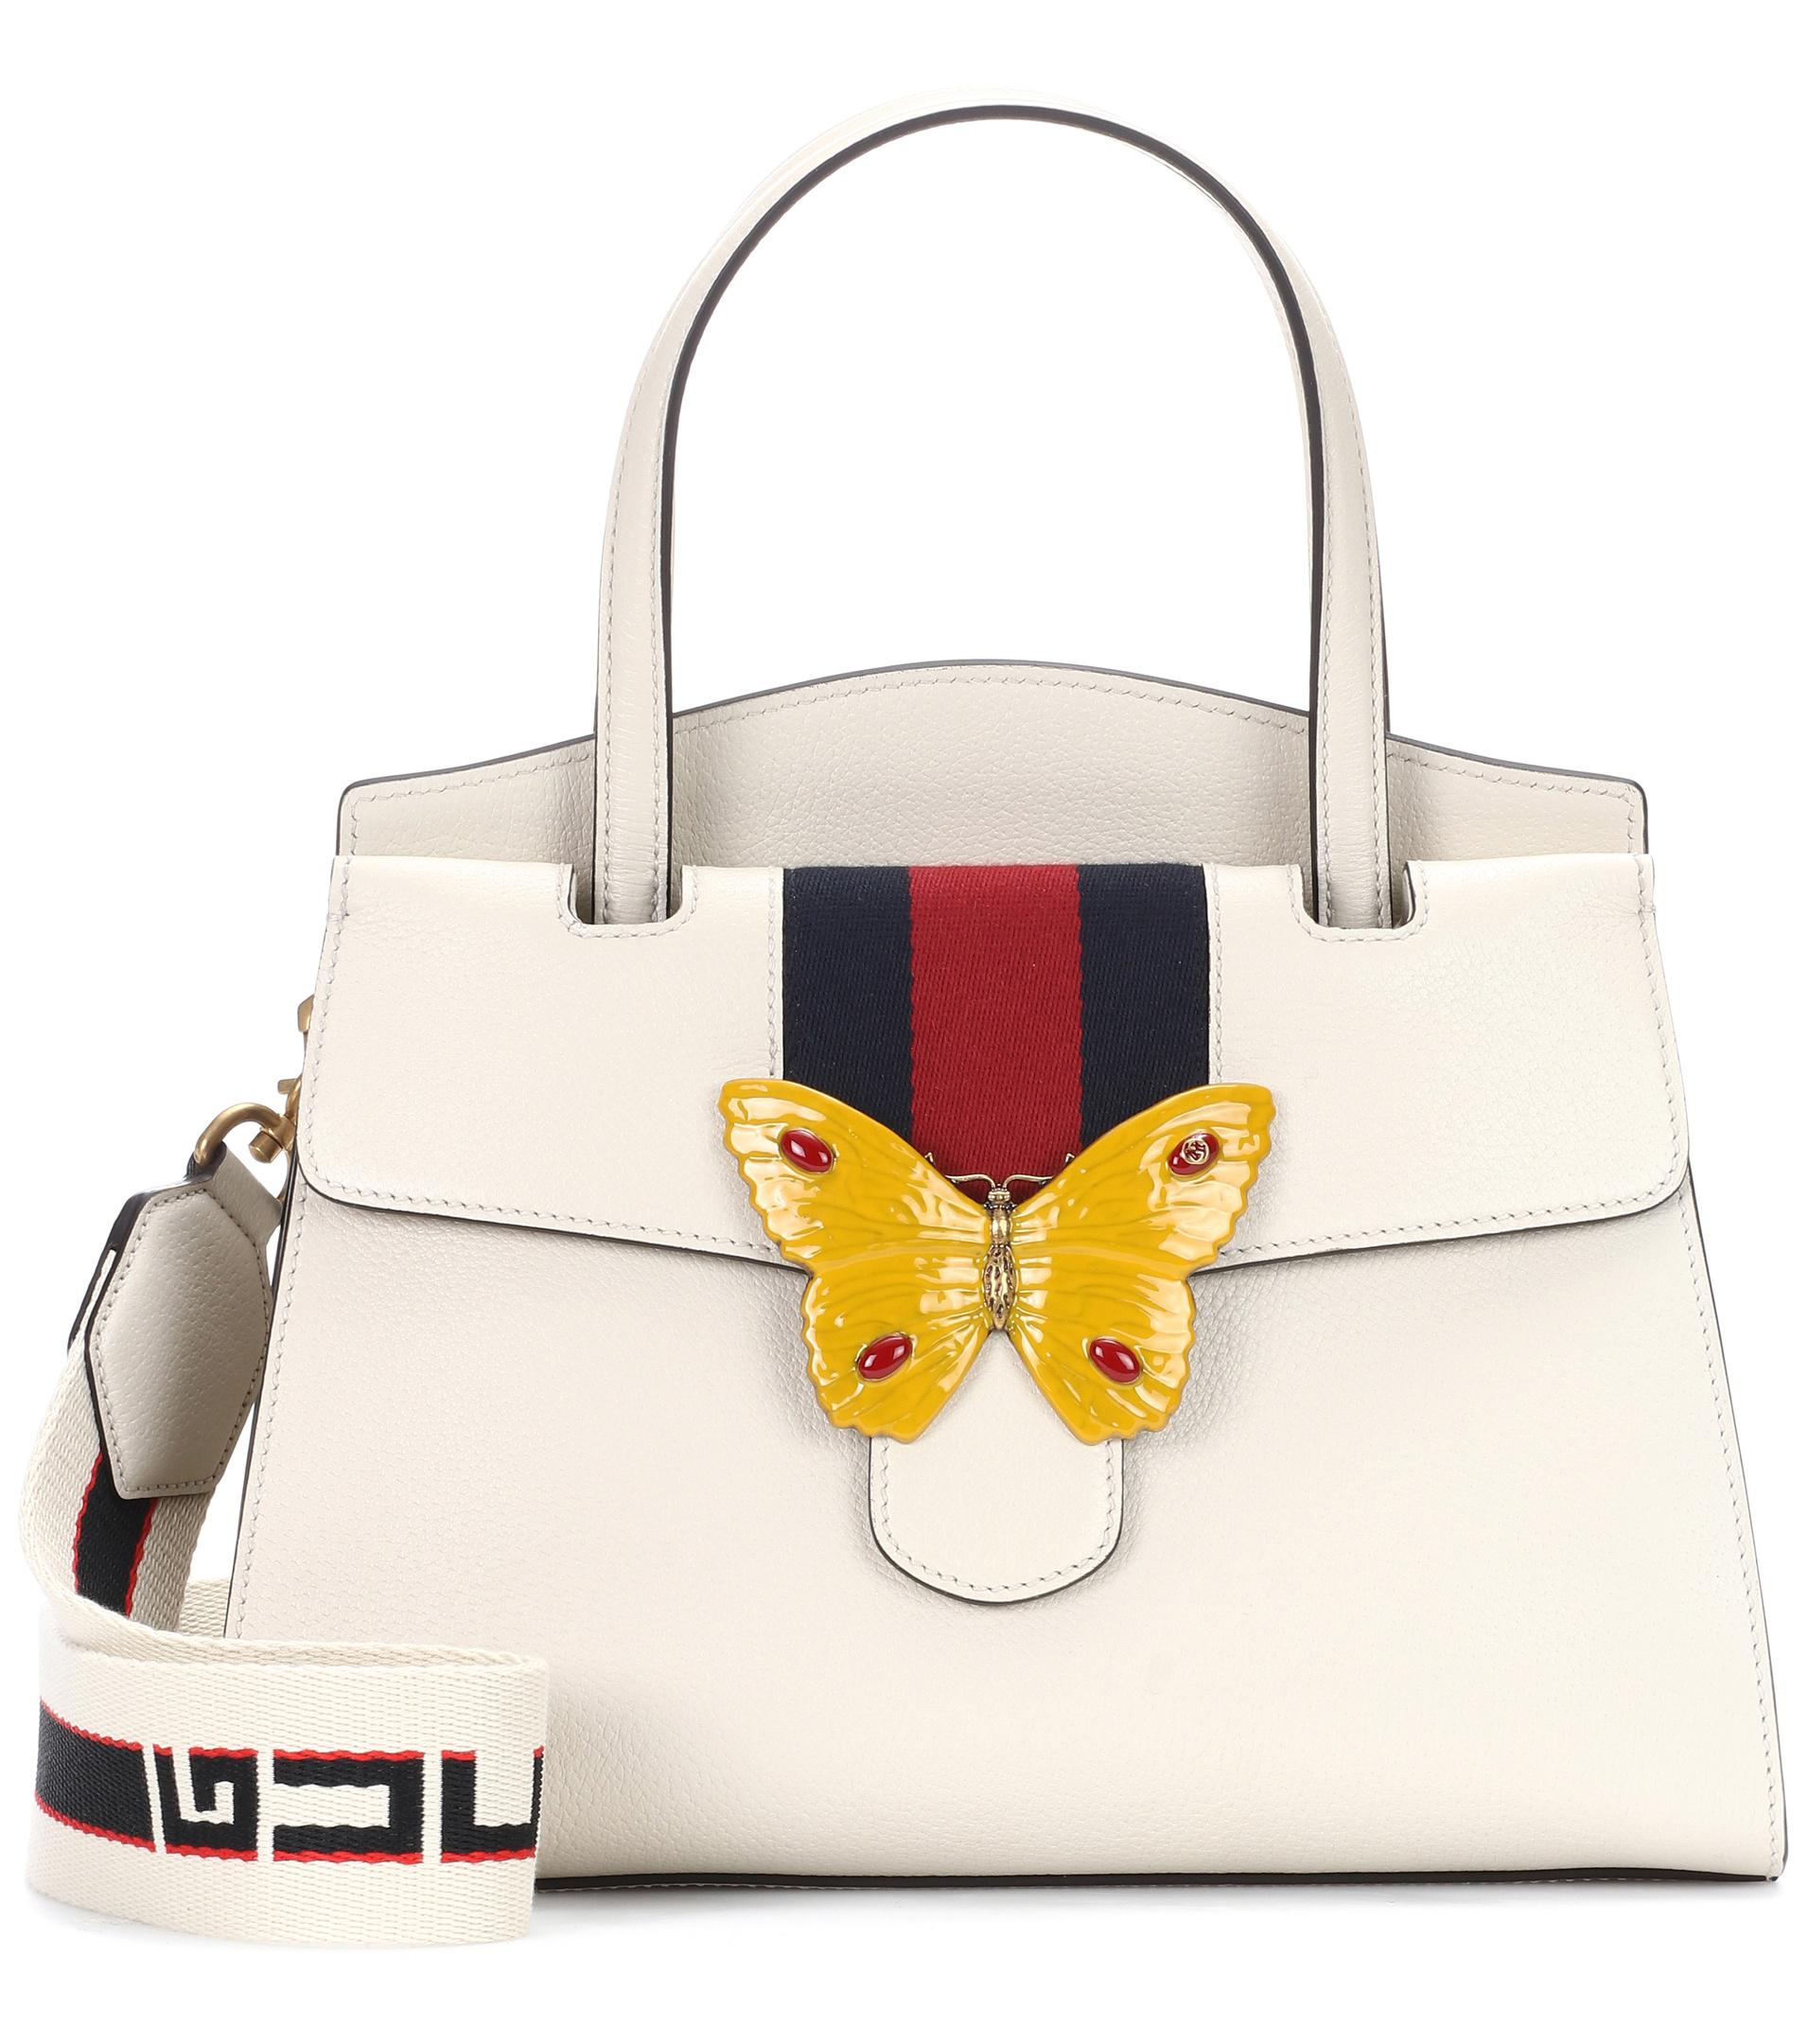 7ee576153822 Gucci Totem Medium Leather Tote in White - Lyst